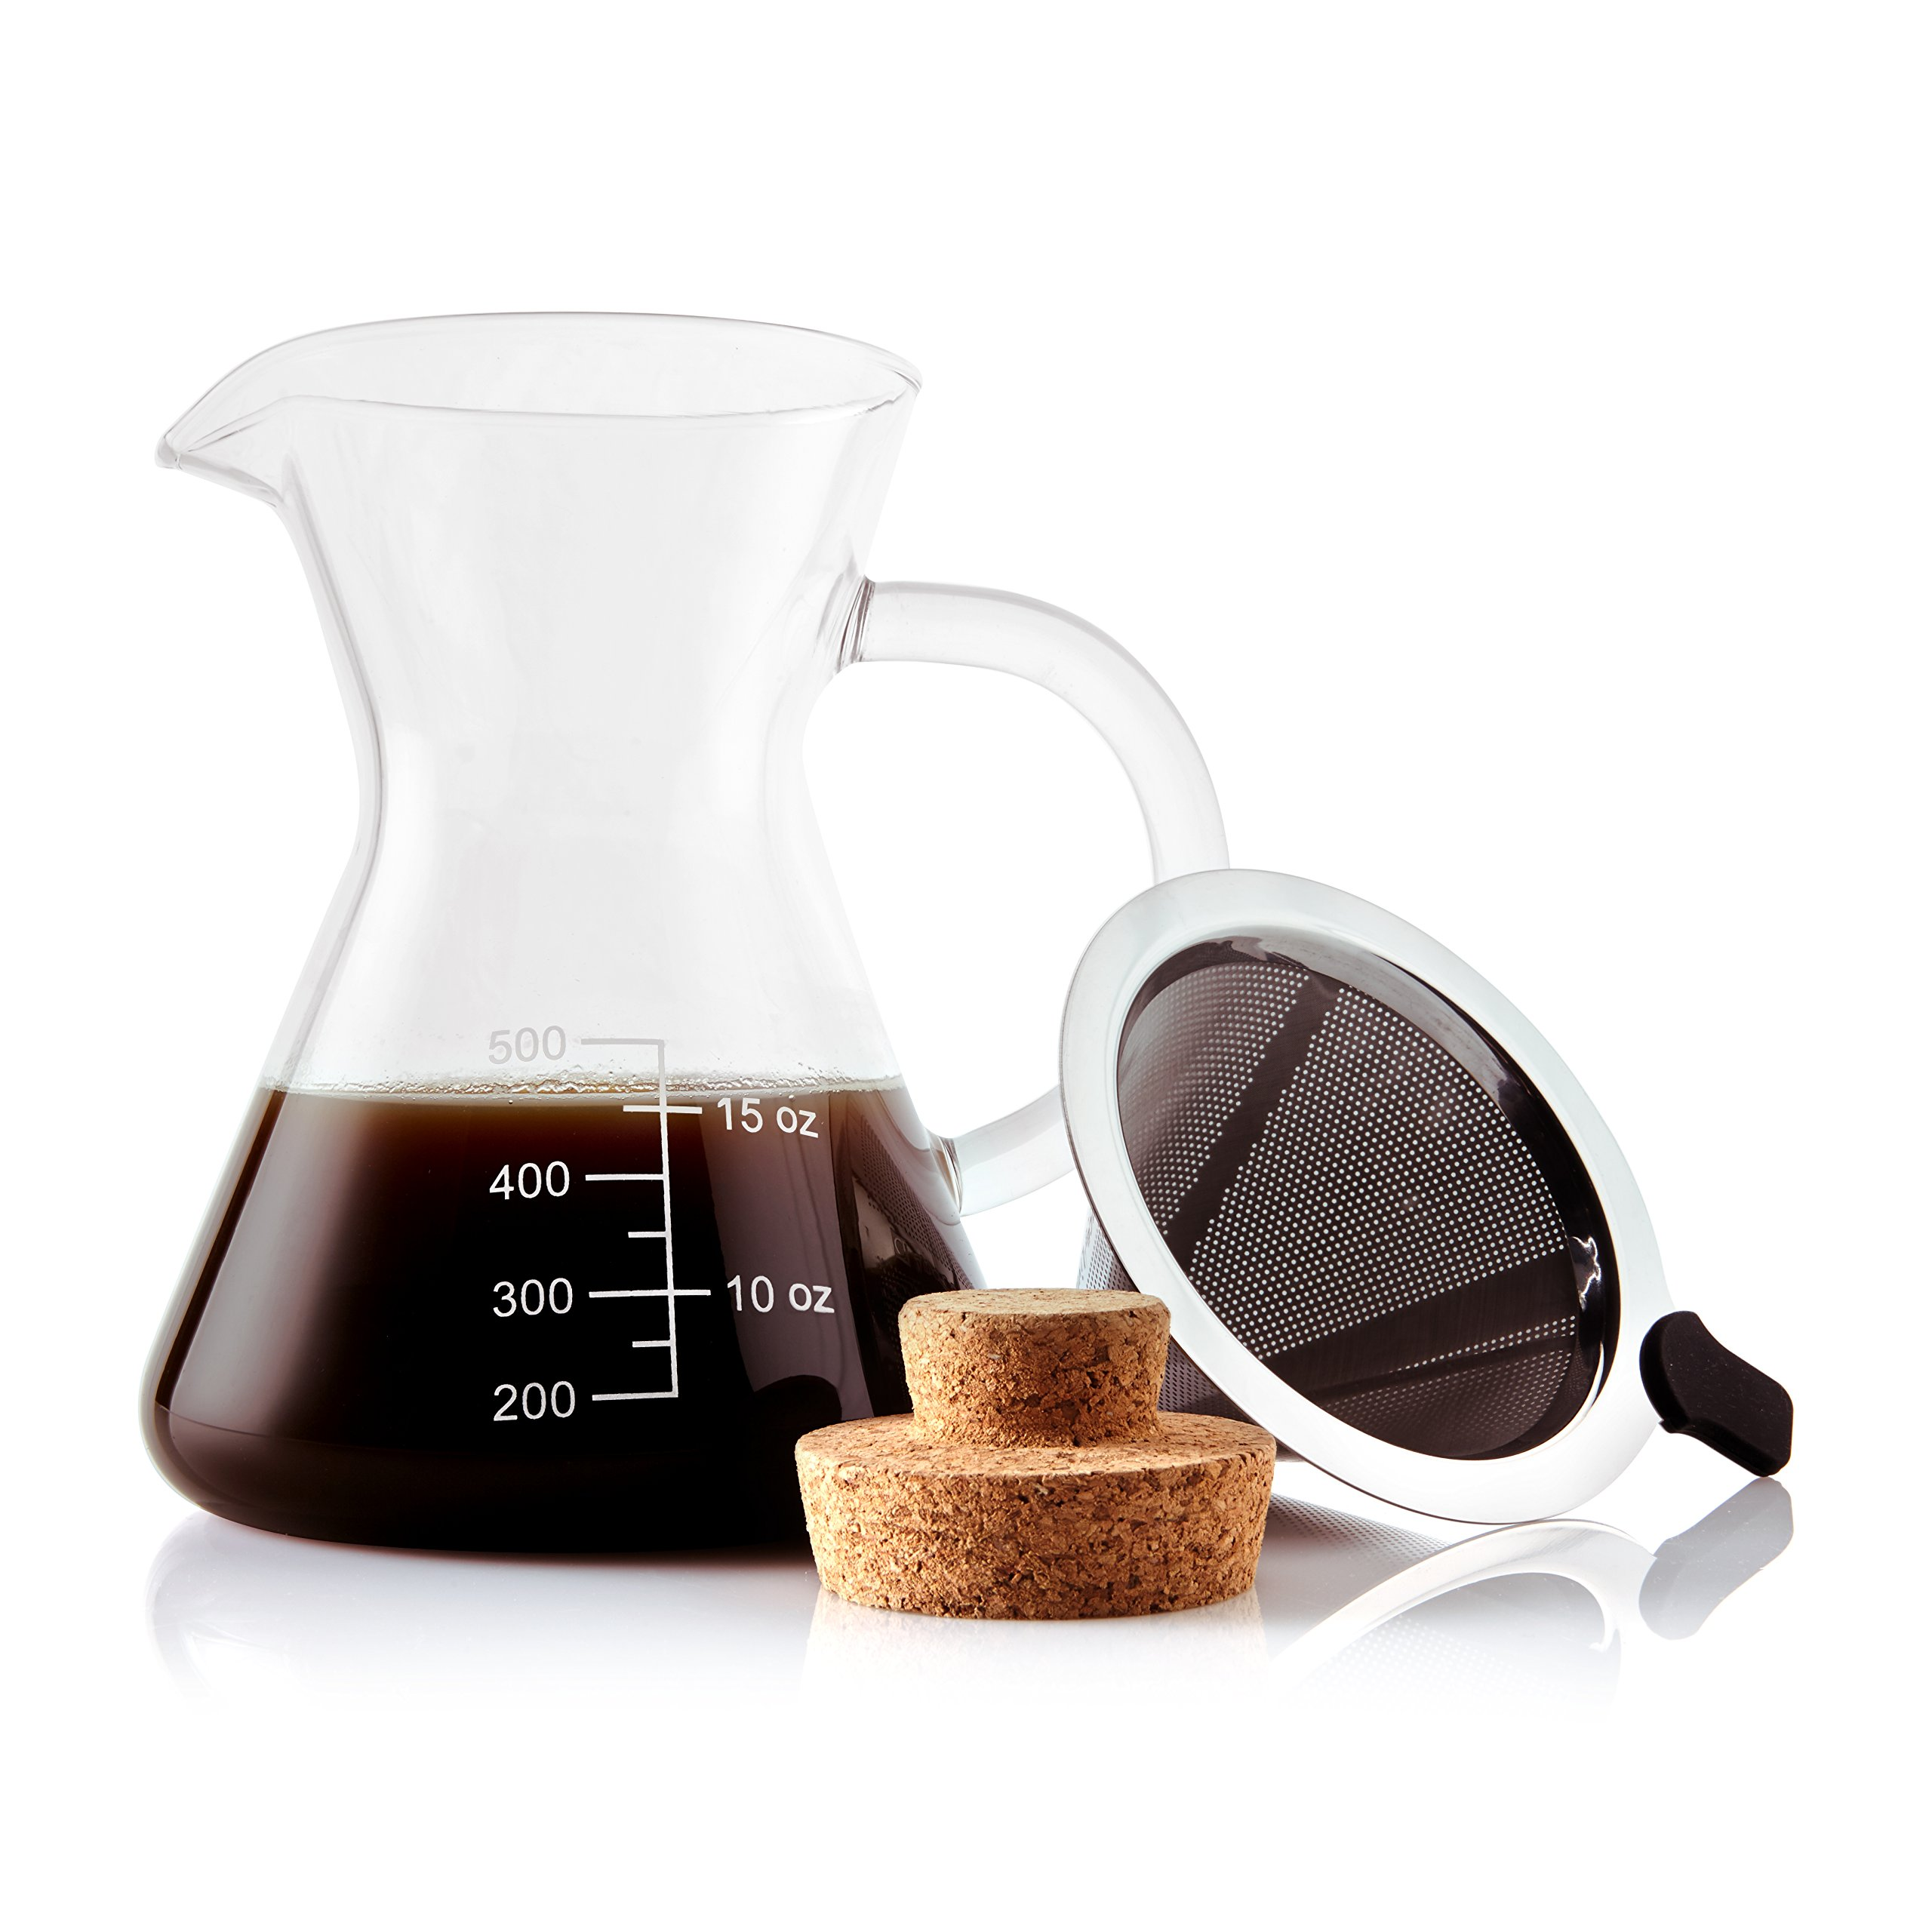 Apace Living Pour Over Coffee Maker Set w/Coffee Scoop and Cork Lid - Elegant Coffee Dripper Pot w/Glass Carafe & Permanent Stainless Steel Filter (400 ml / 13.5 oz)